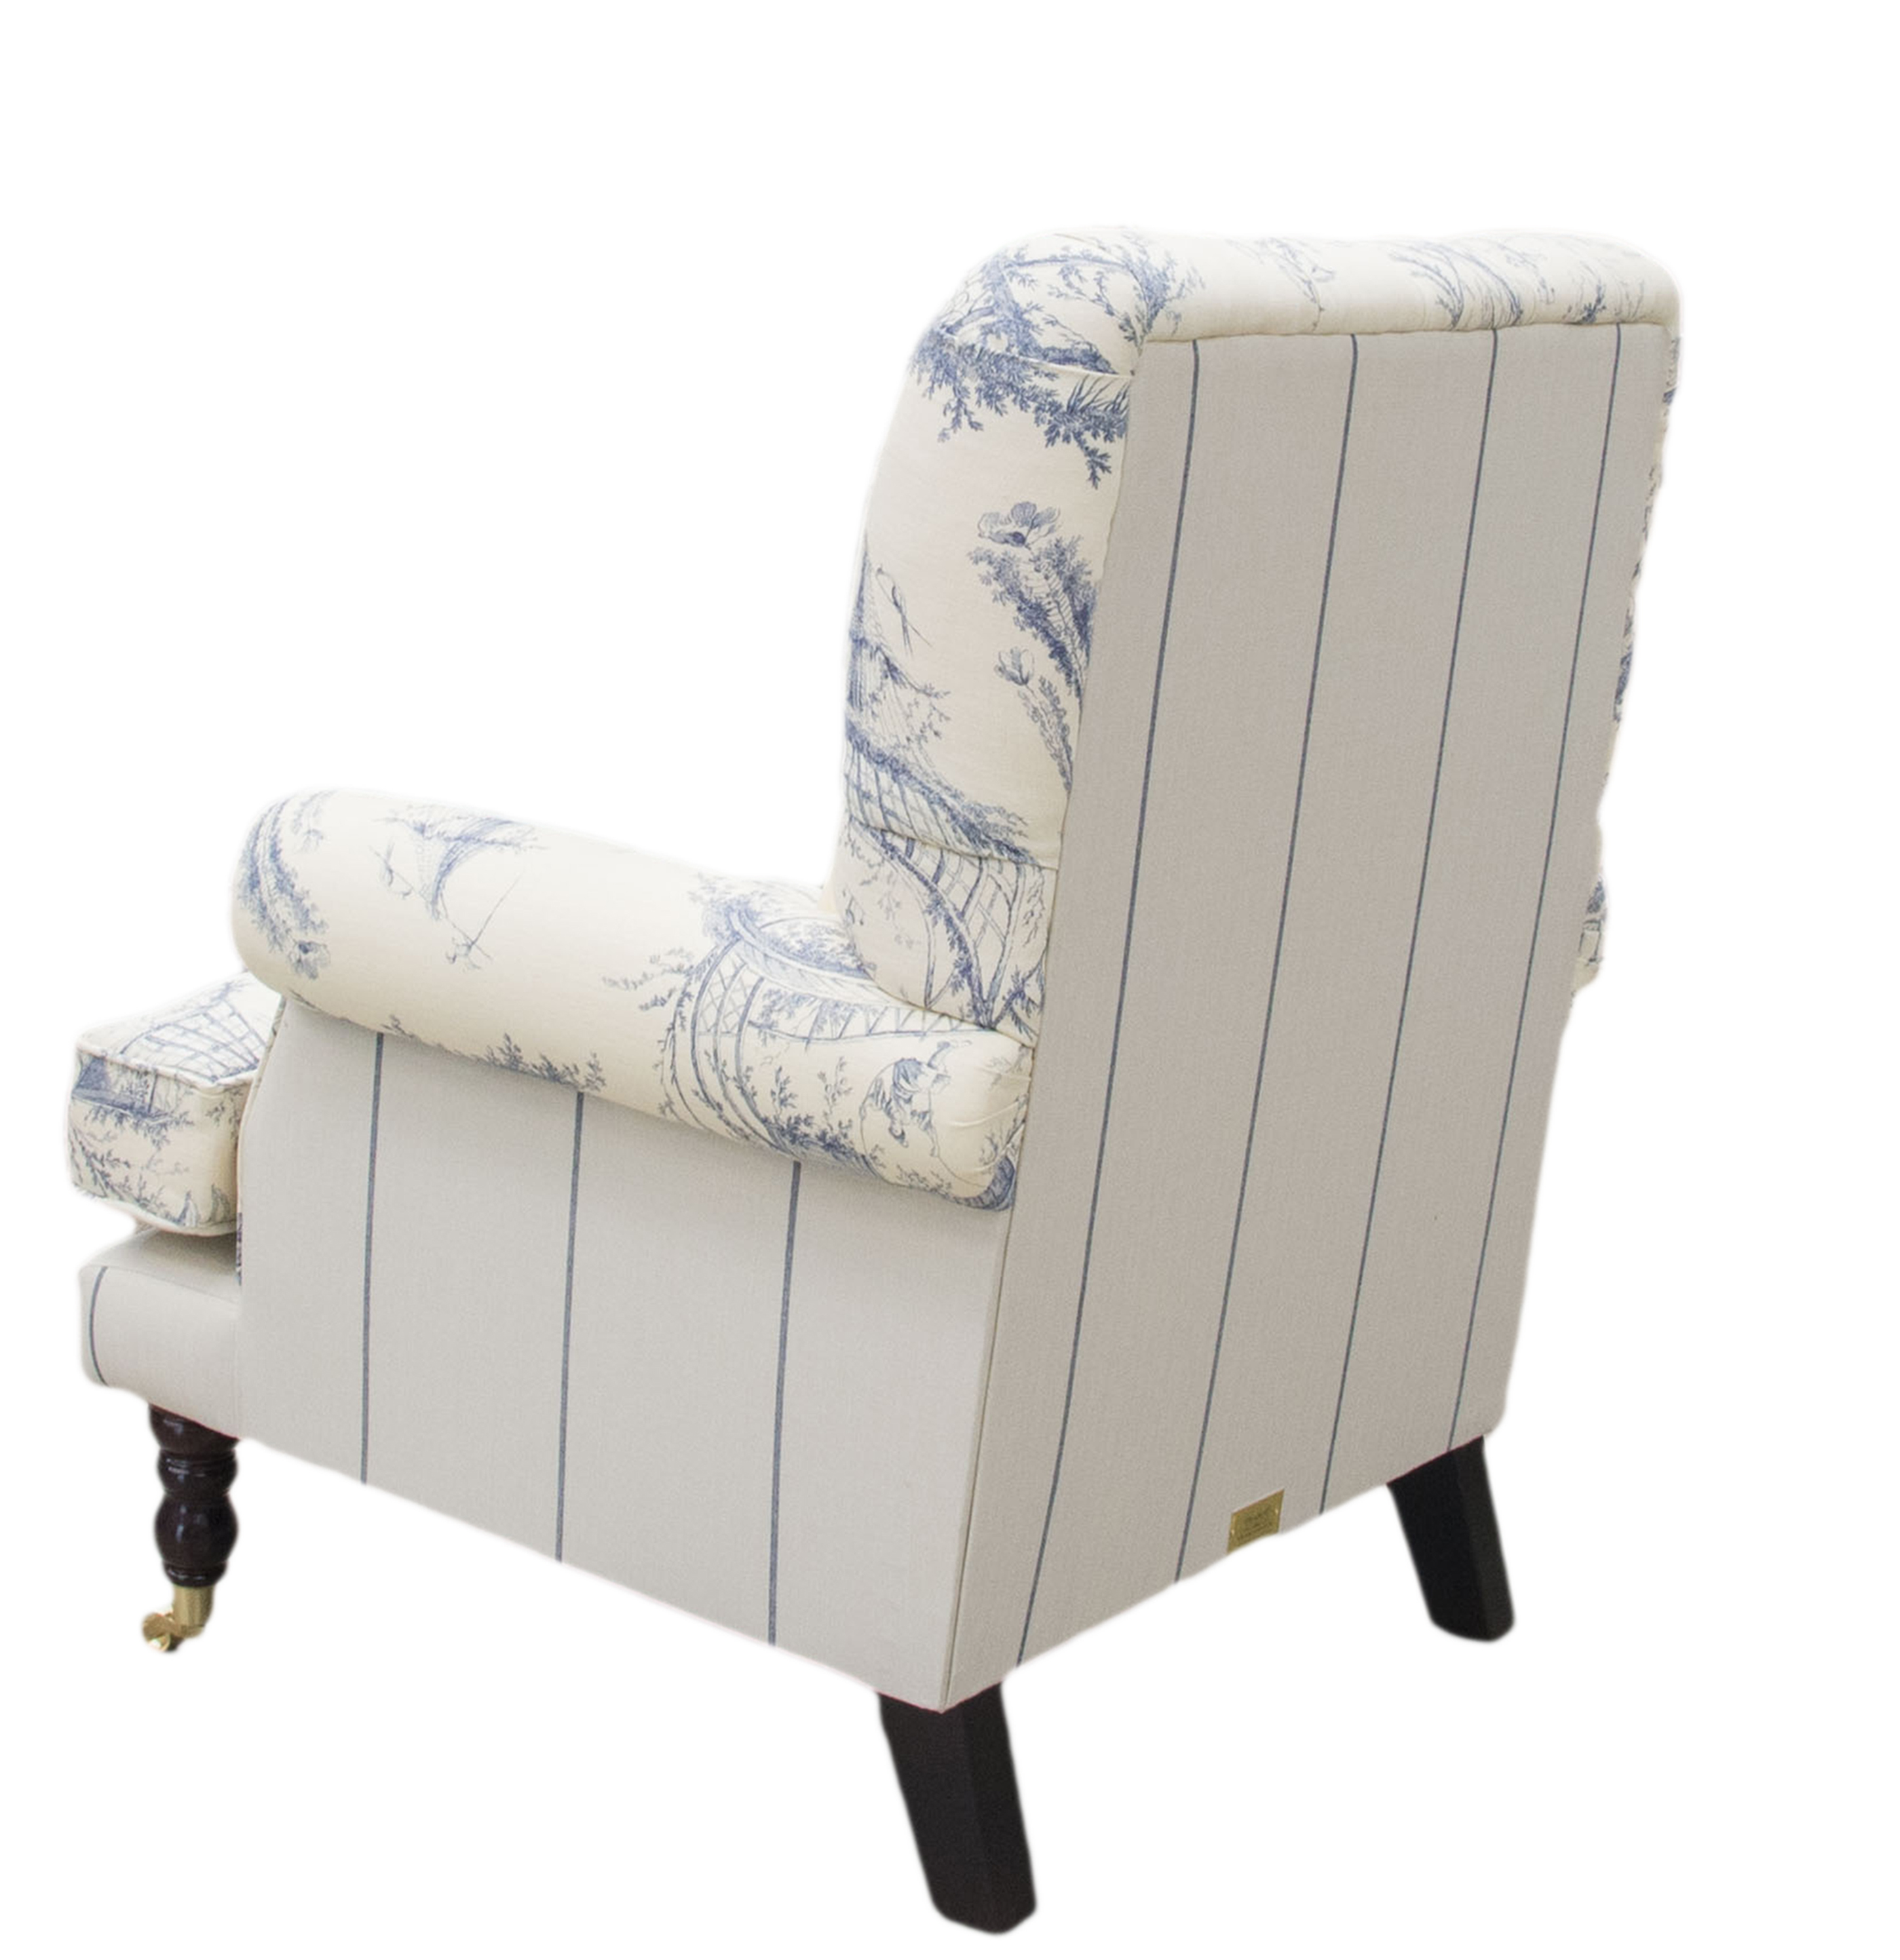 Cleary-Depp-Buttoned-Chair-COM-back